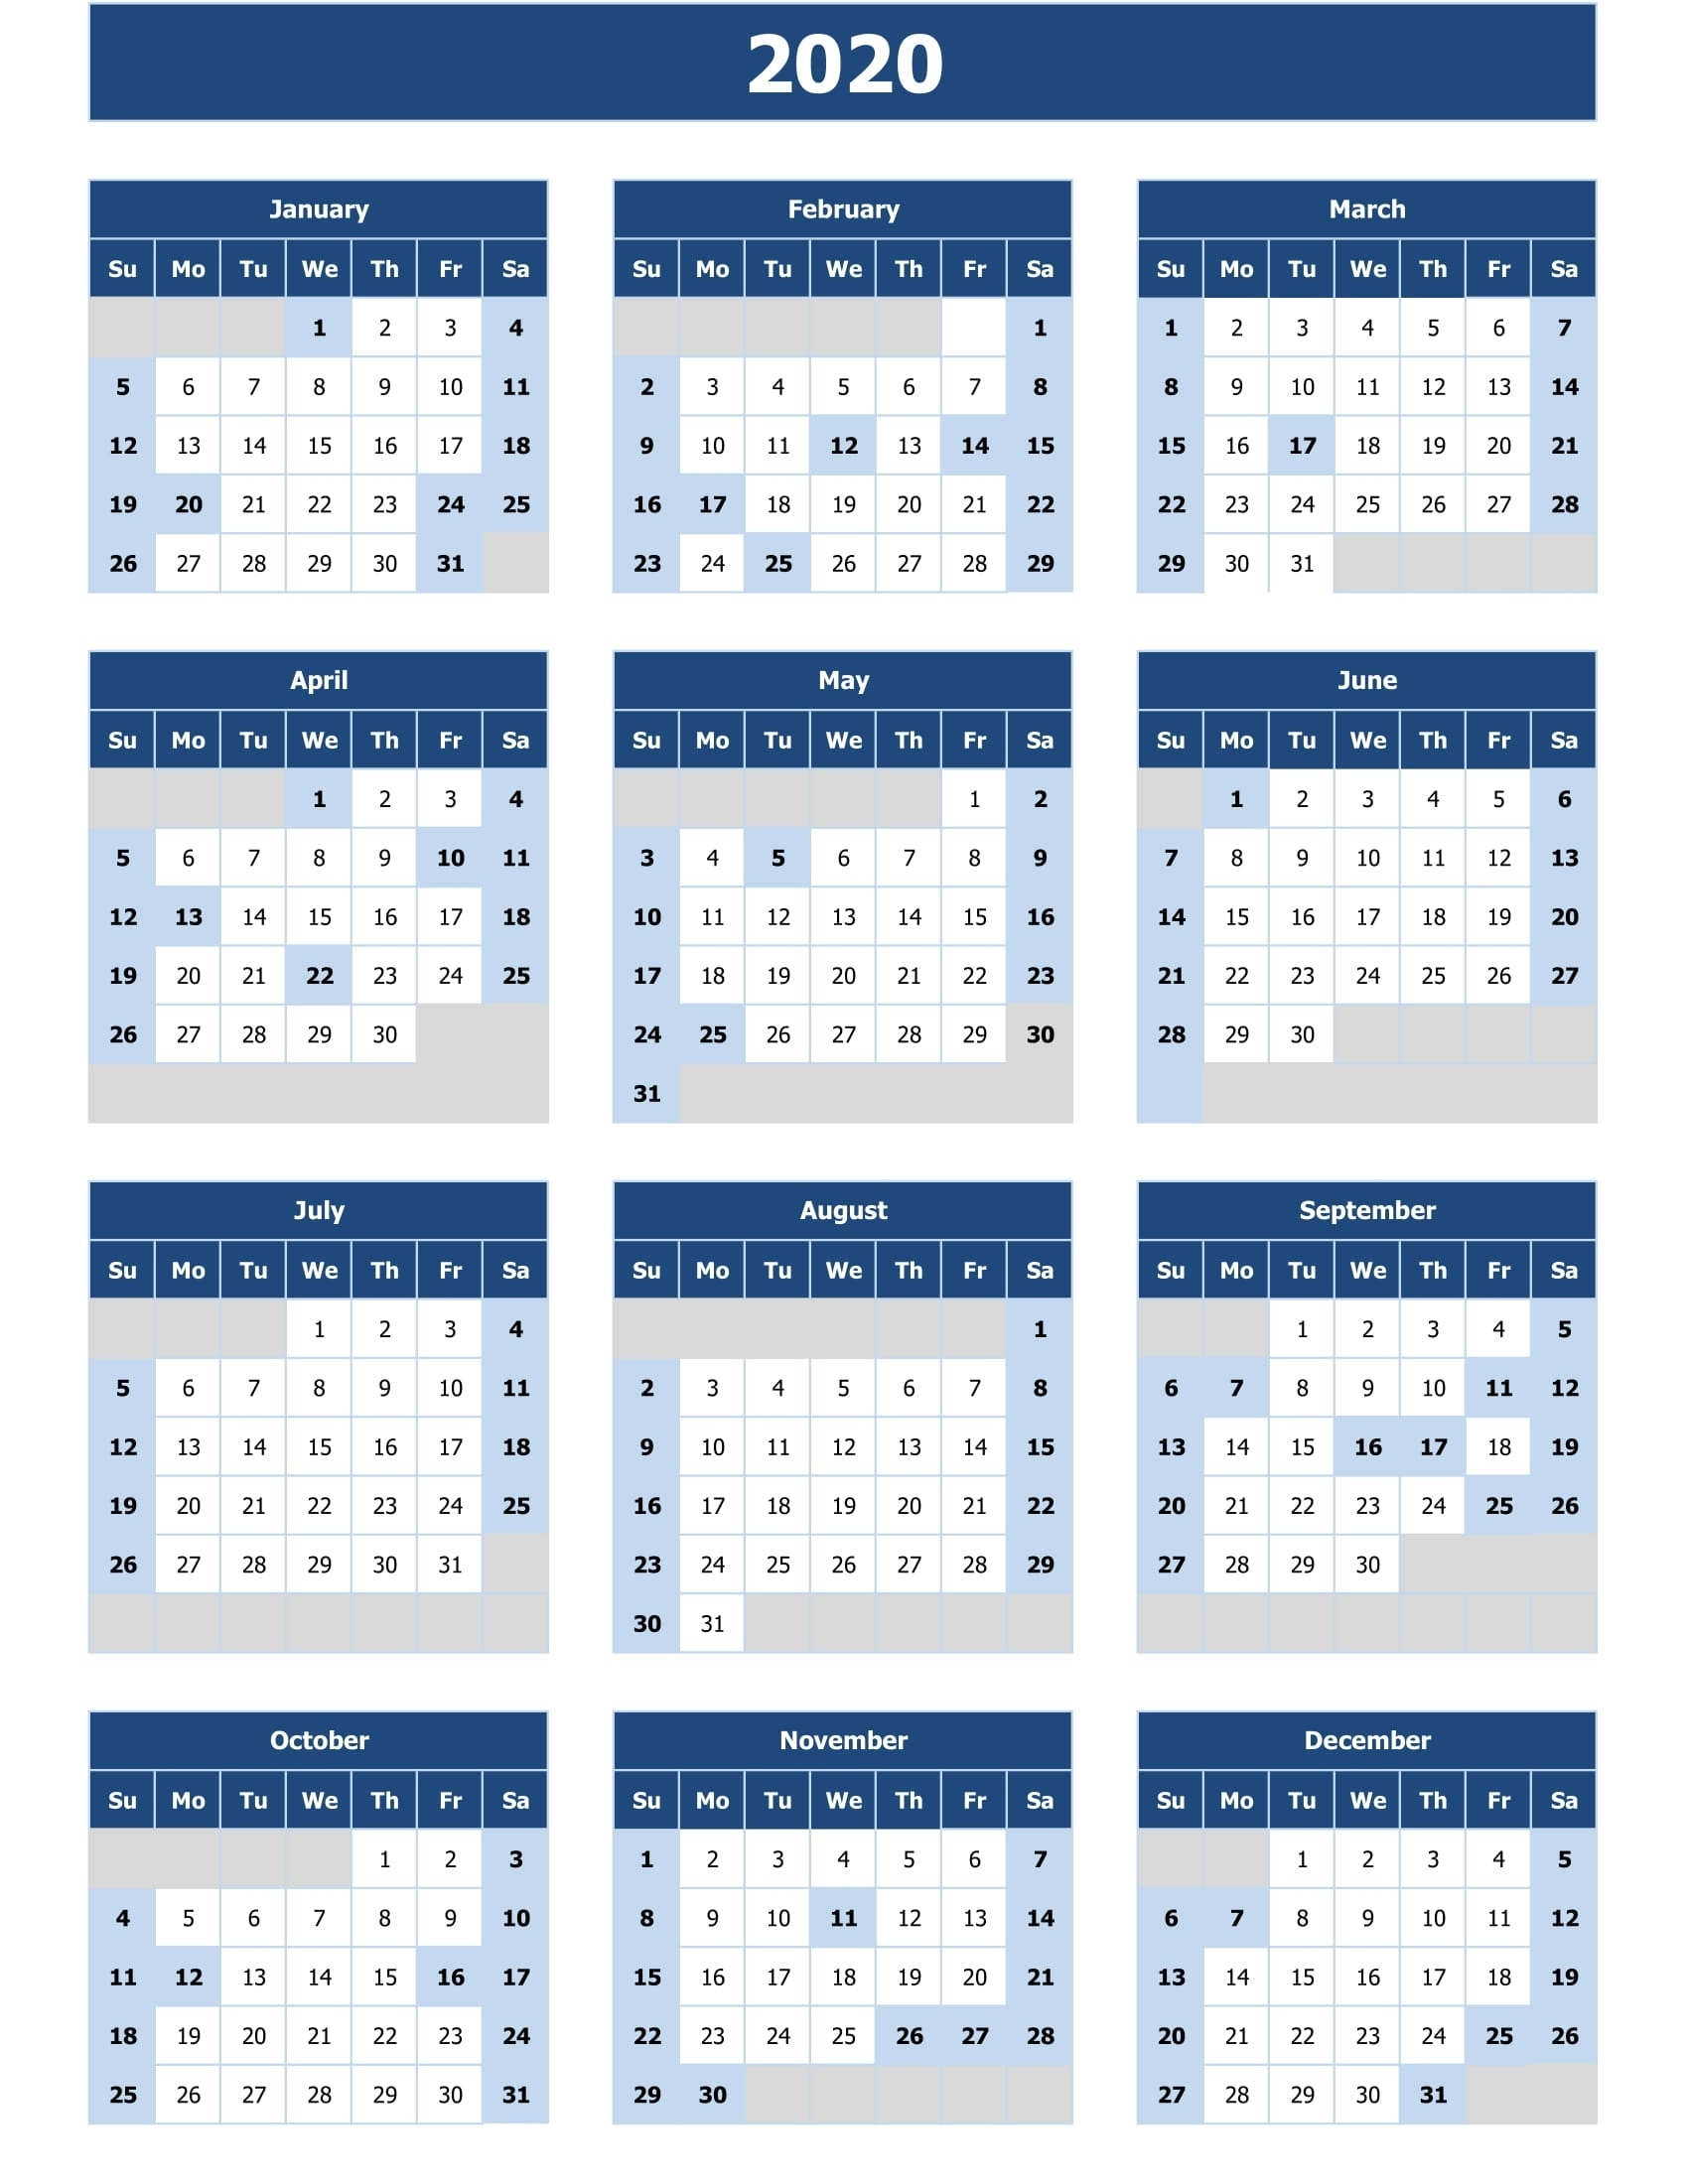 2020 Calendar Excel For Your Good Day For Desk | Calendar inside 2020 Calendar With All Function